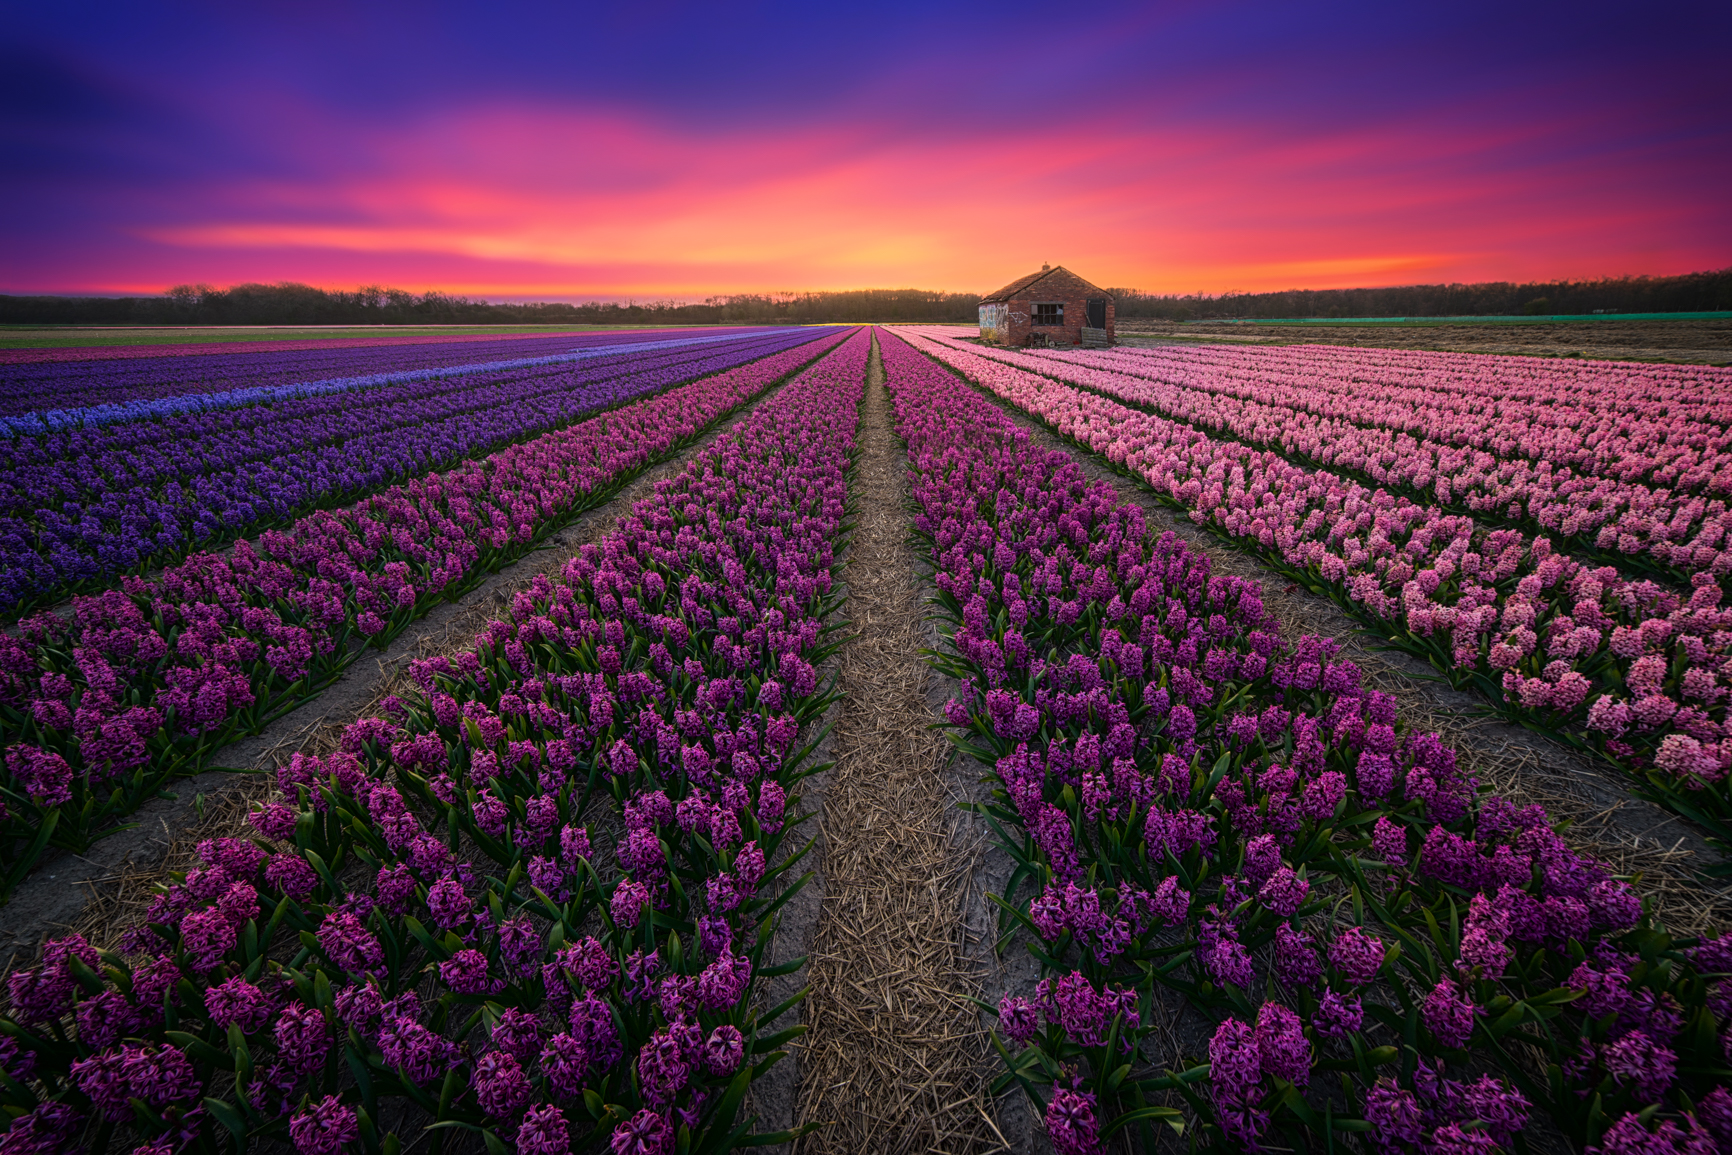 30+ Reasons Why The Netherlands Is A Beautiful Country